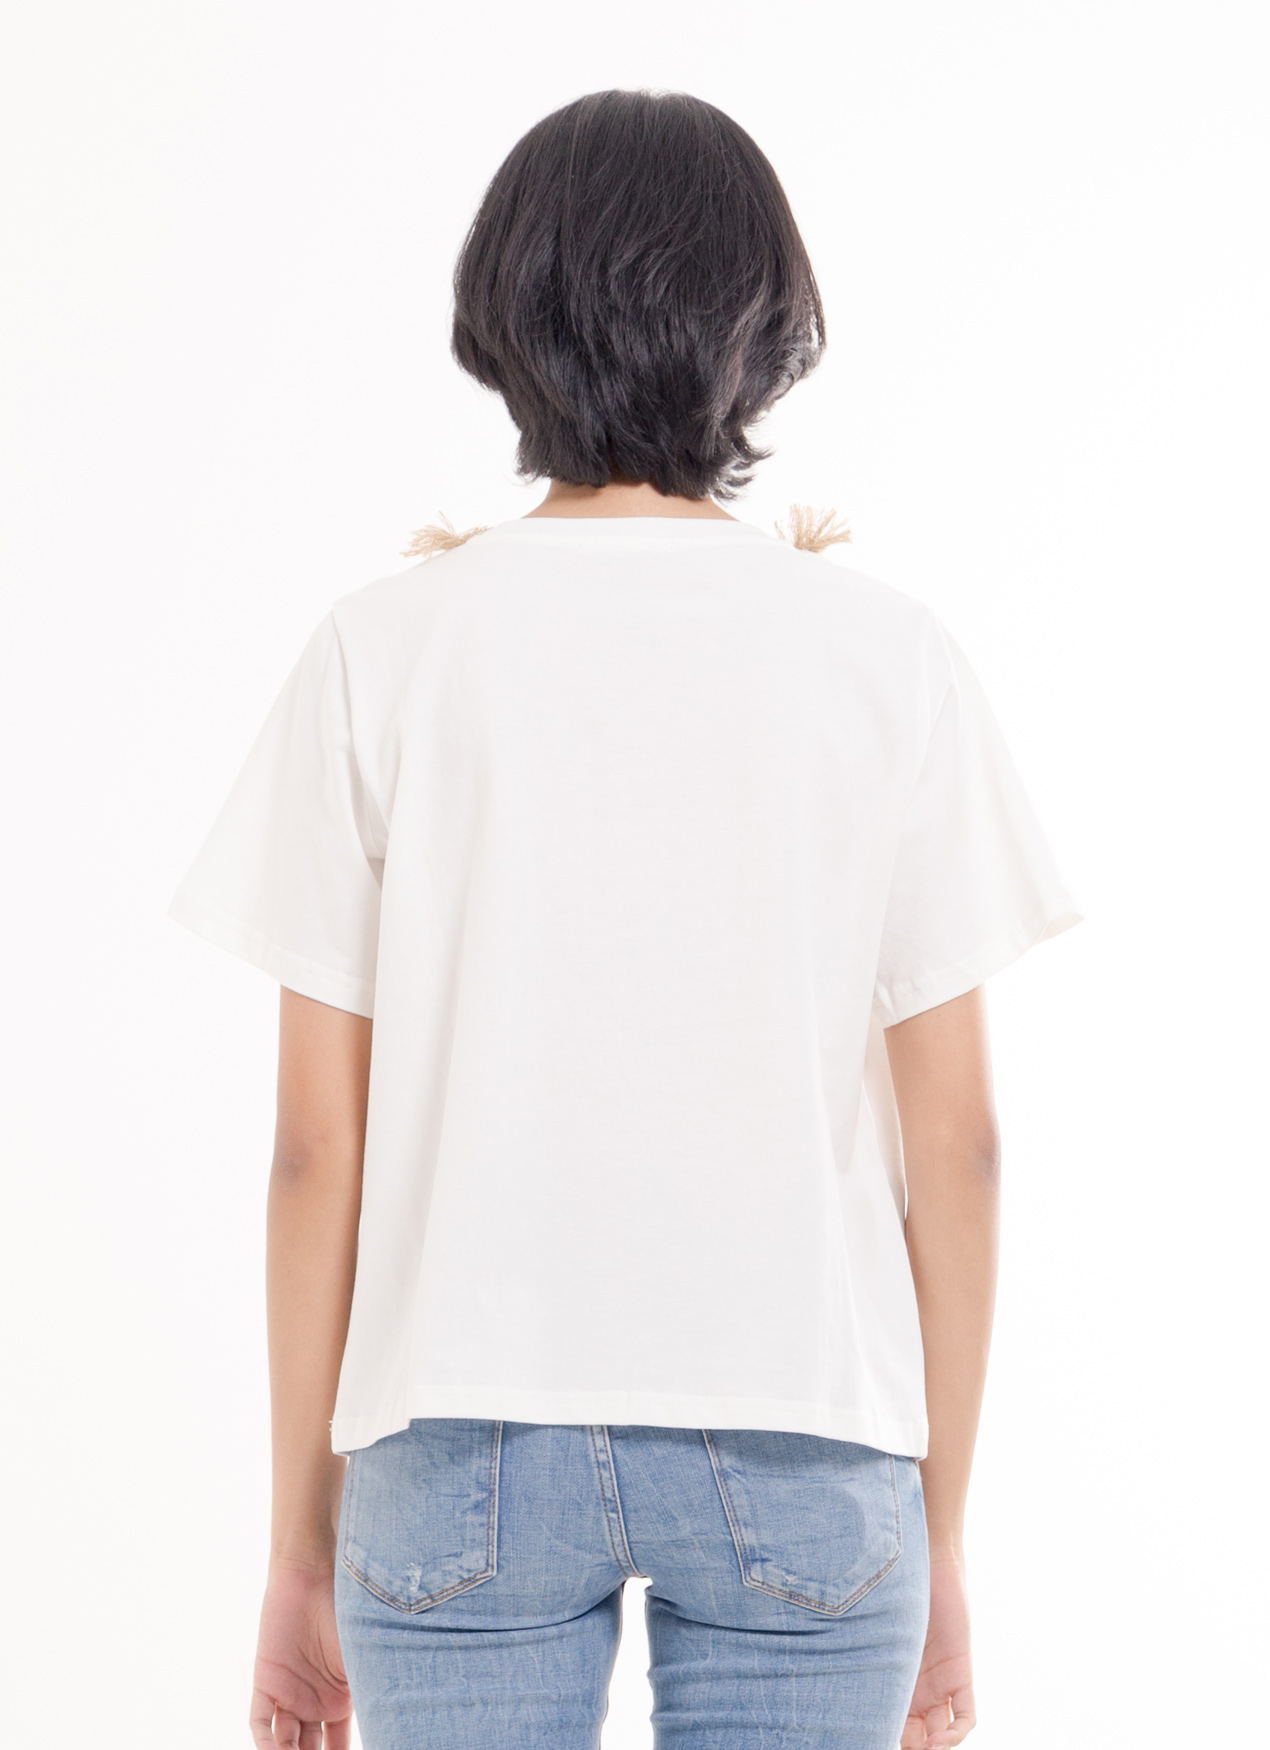 BOWN Isla Top - White